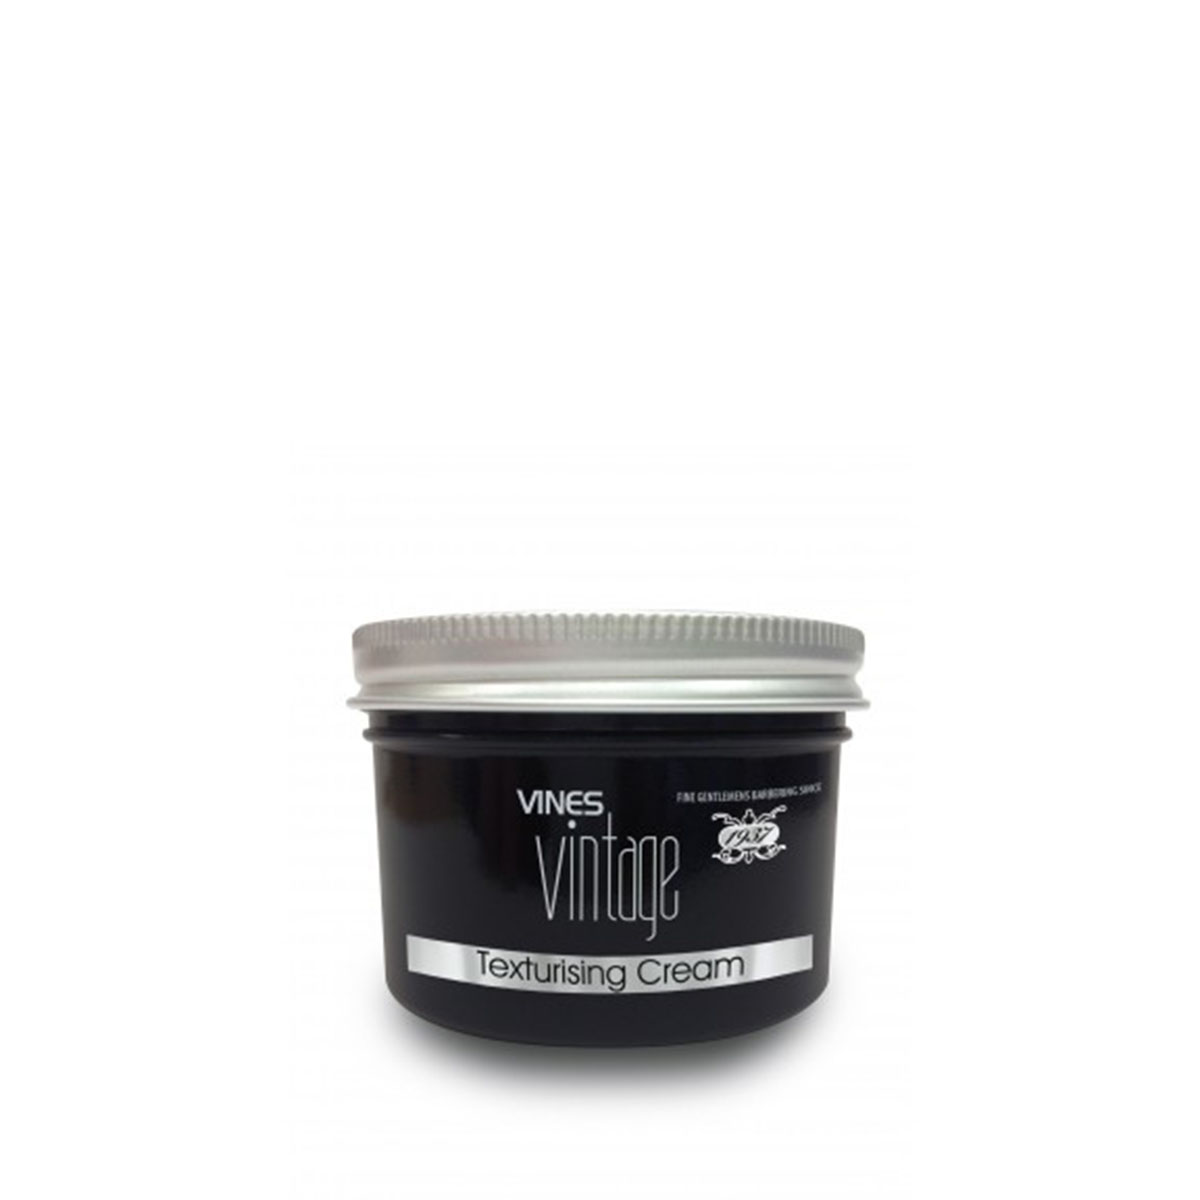 Texturising Cream 125ml Vines Vintage